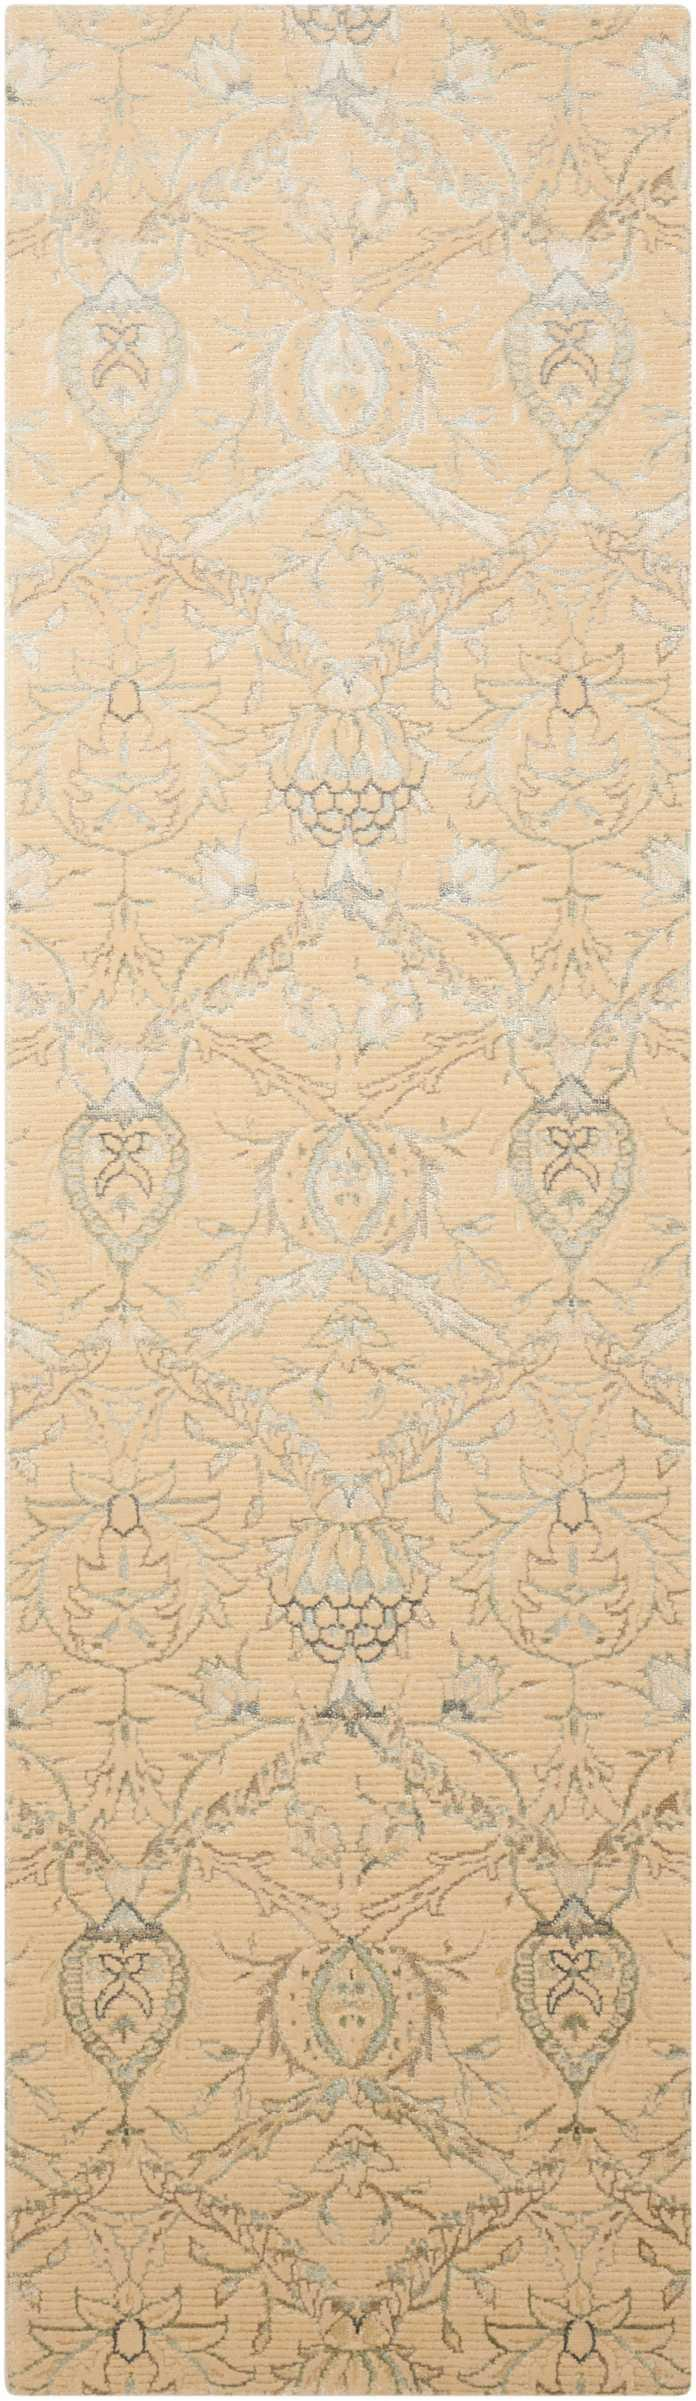 Nourison LUMINANCE LUM07 CREAM Area Rug